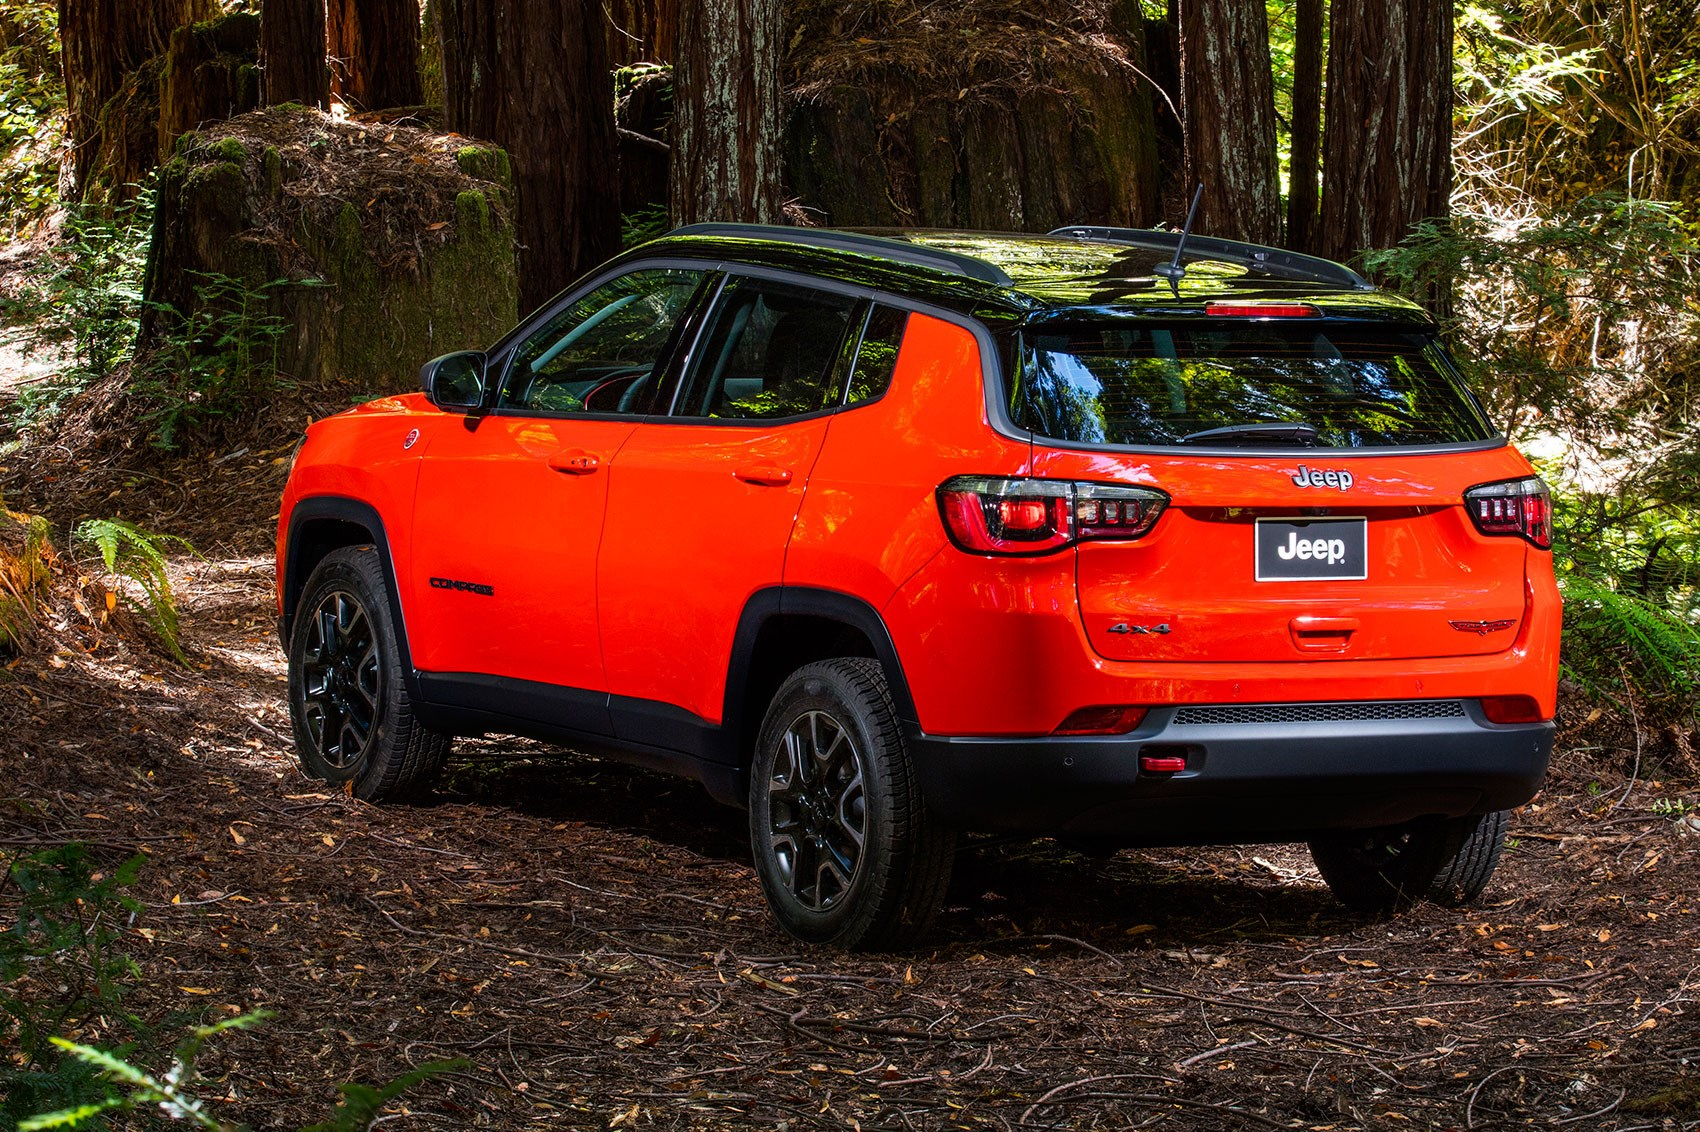 Cars For Sale Los Angeles >> New Jeep Compass unveiled at LA Auto Show by CAR Magazine